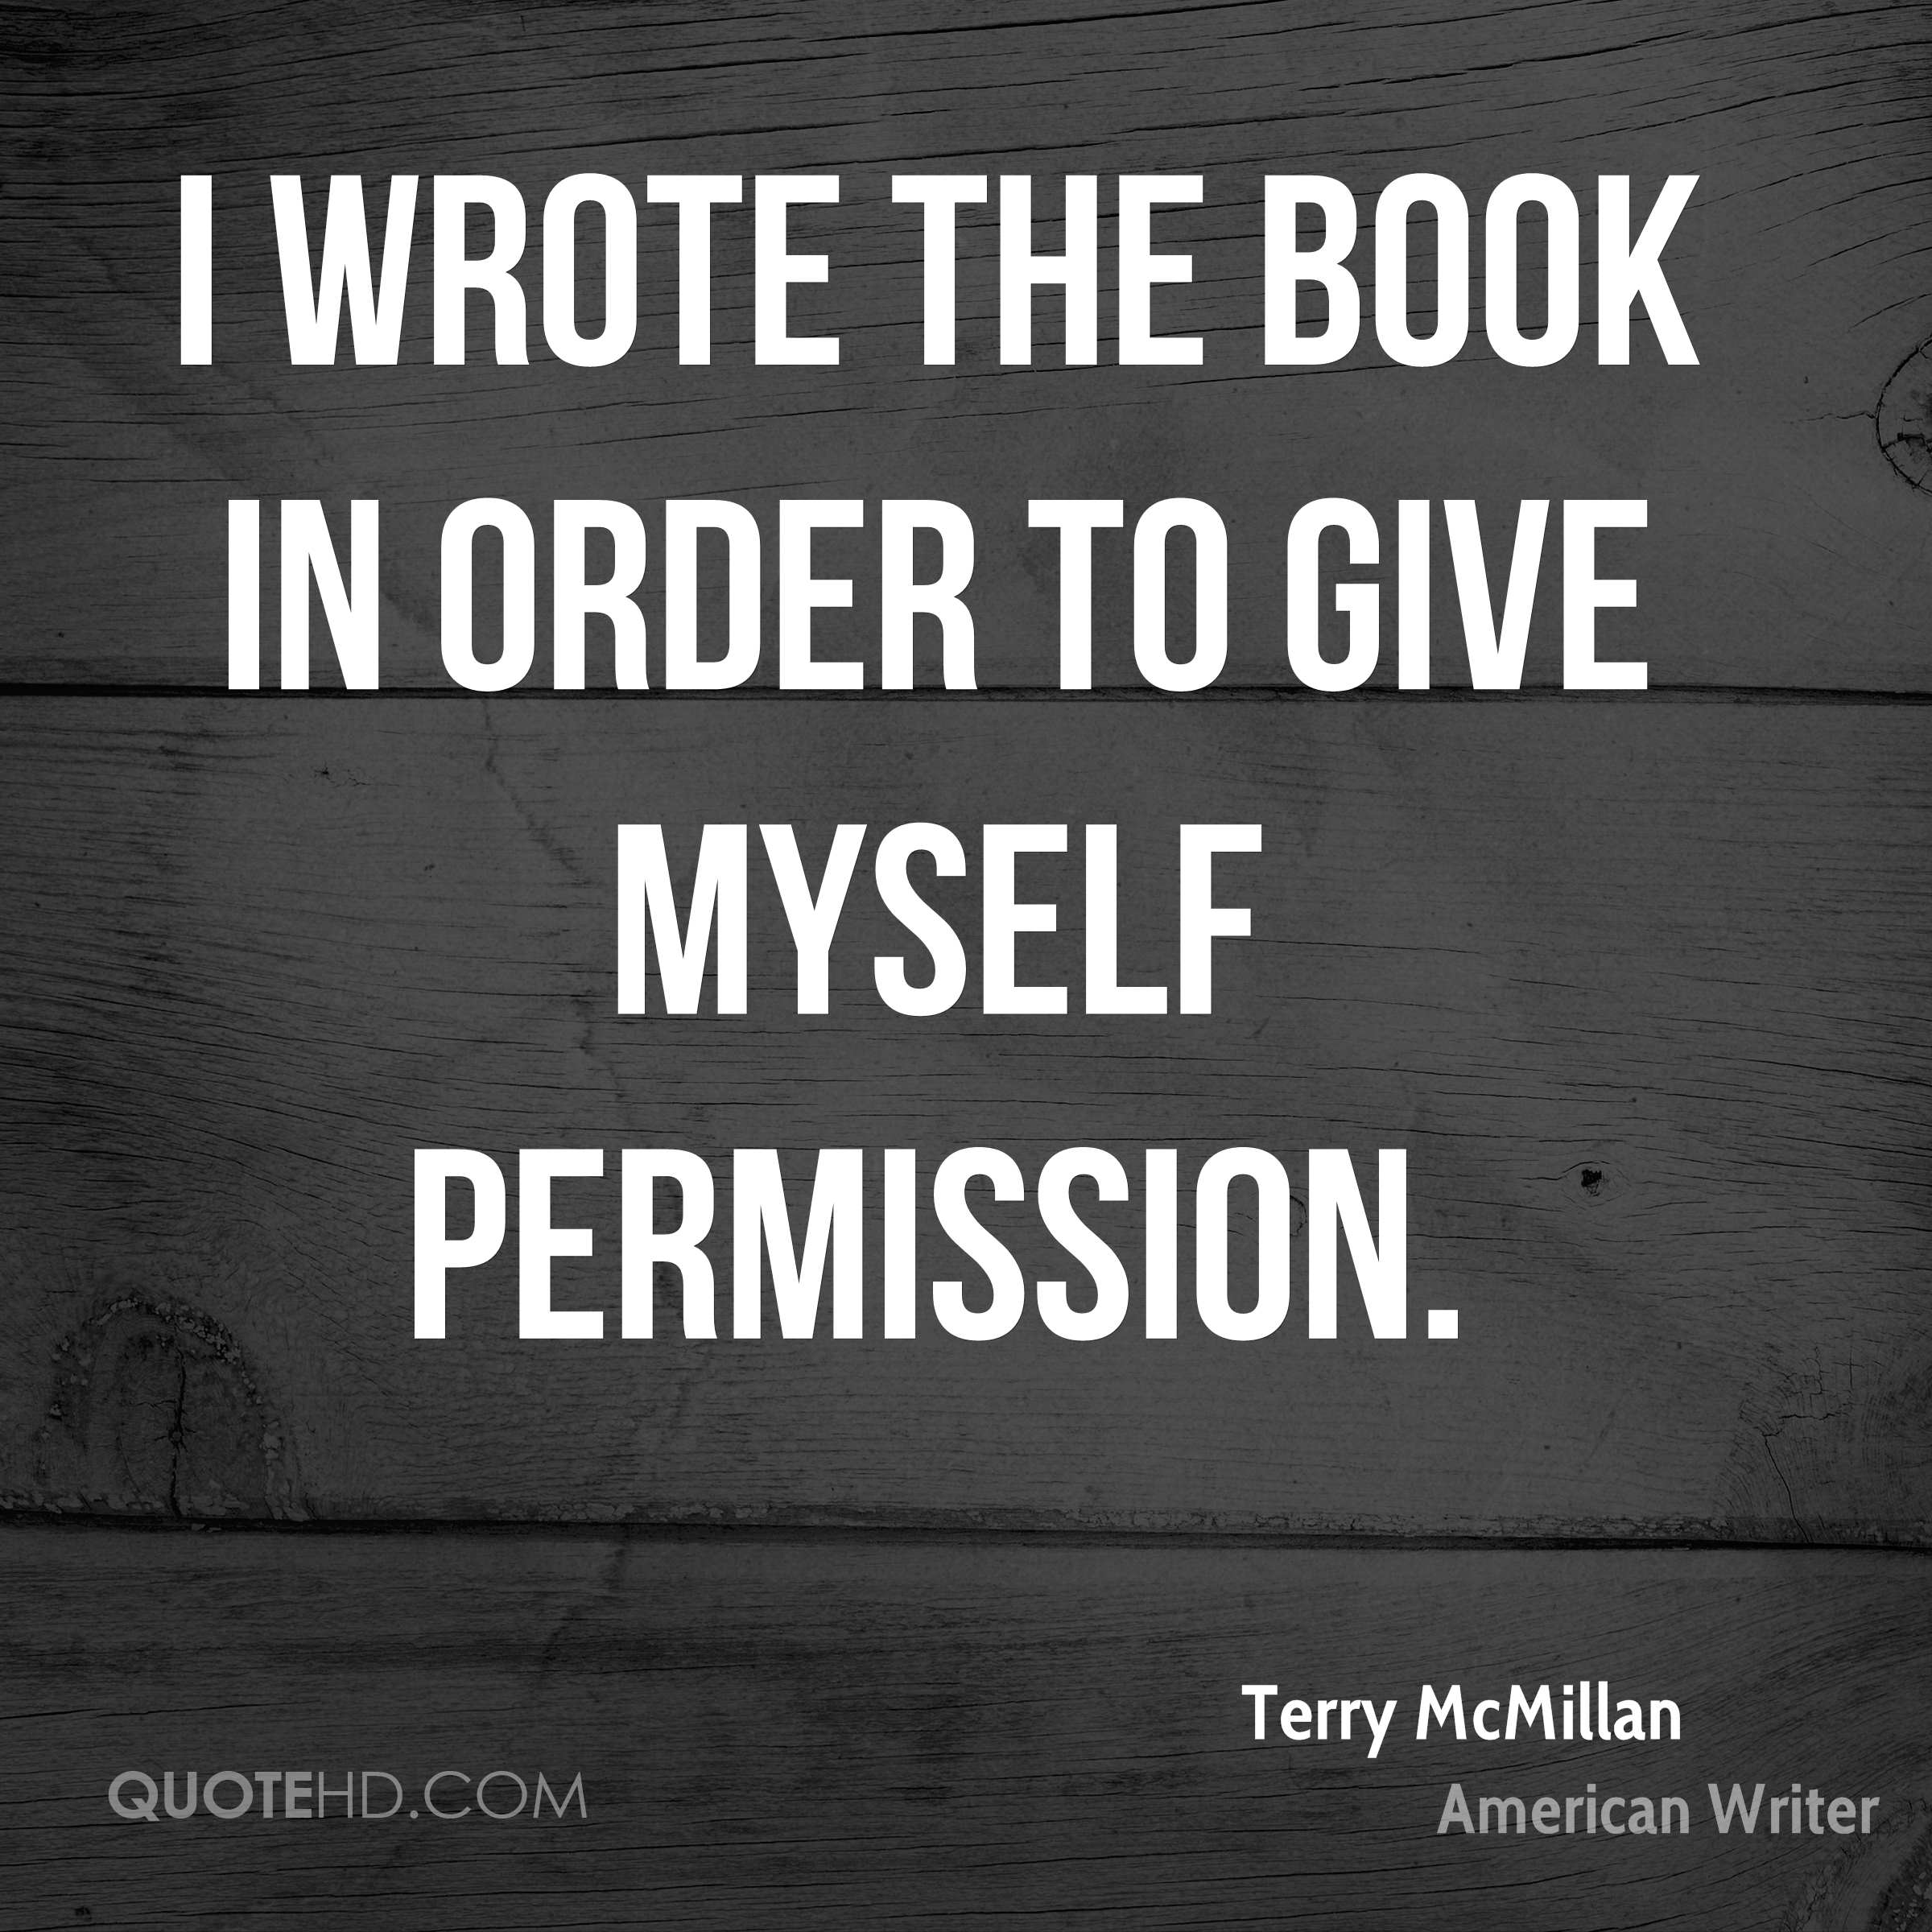 I wrote the book in order to give myself permission.